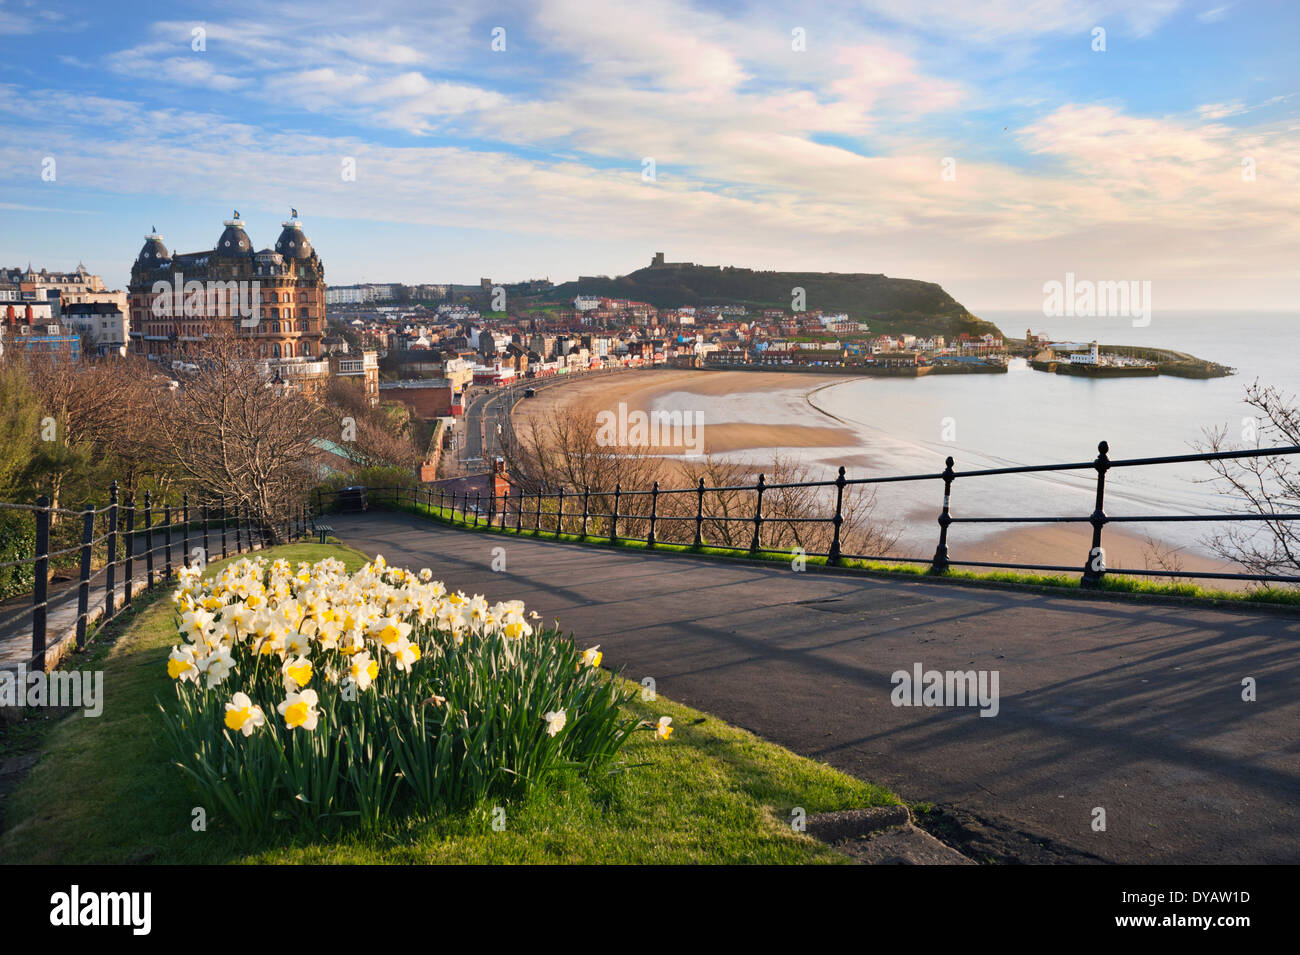 Early morning in Spring over North Bay, showing The Grand Hotel and the Castle, Scarborough, North Yorkshire, UK - Stock Image